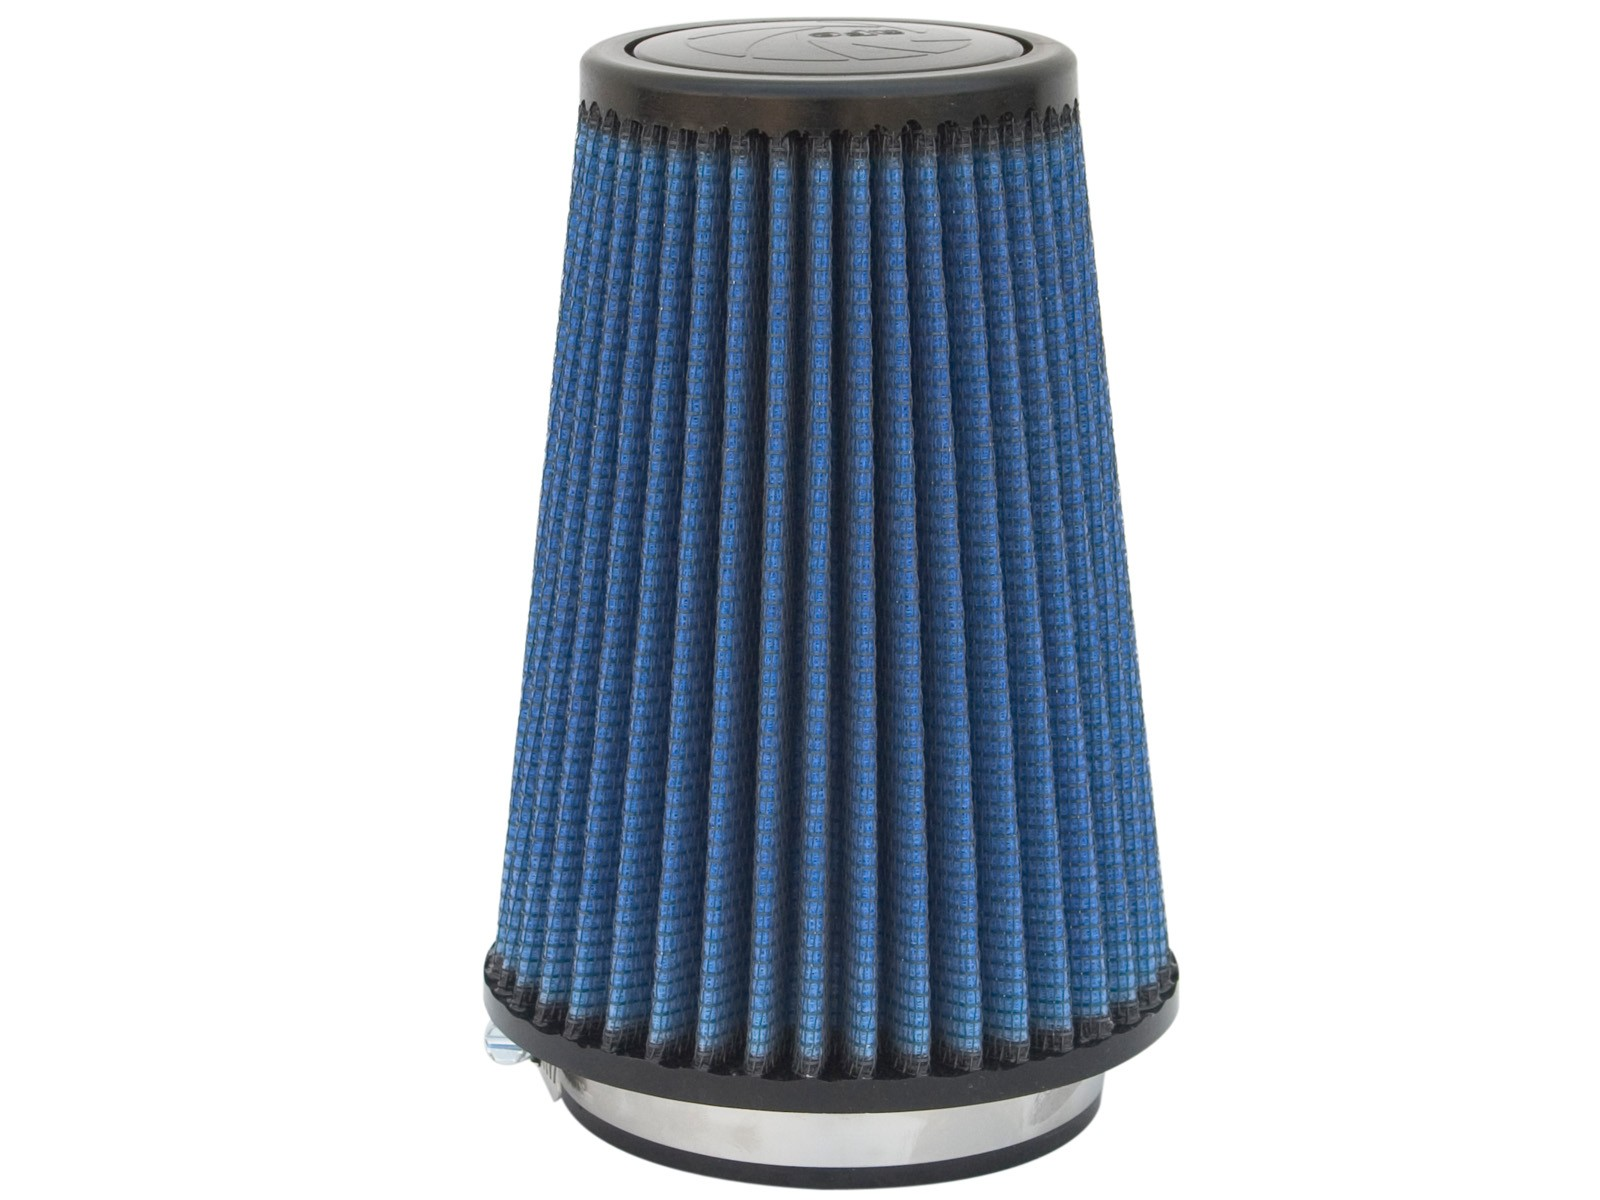 aFe POWER 24-35507 Magnum FLOW Pro 5R Air Filter